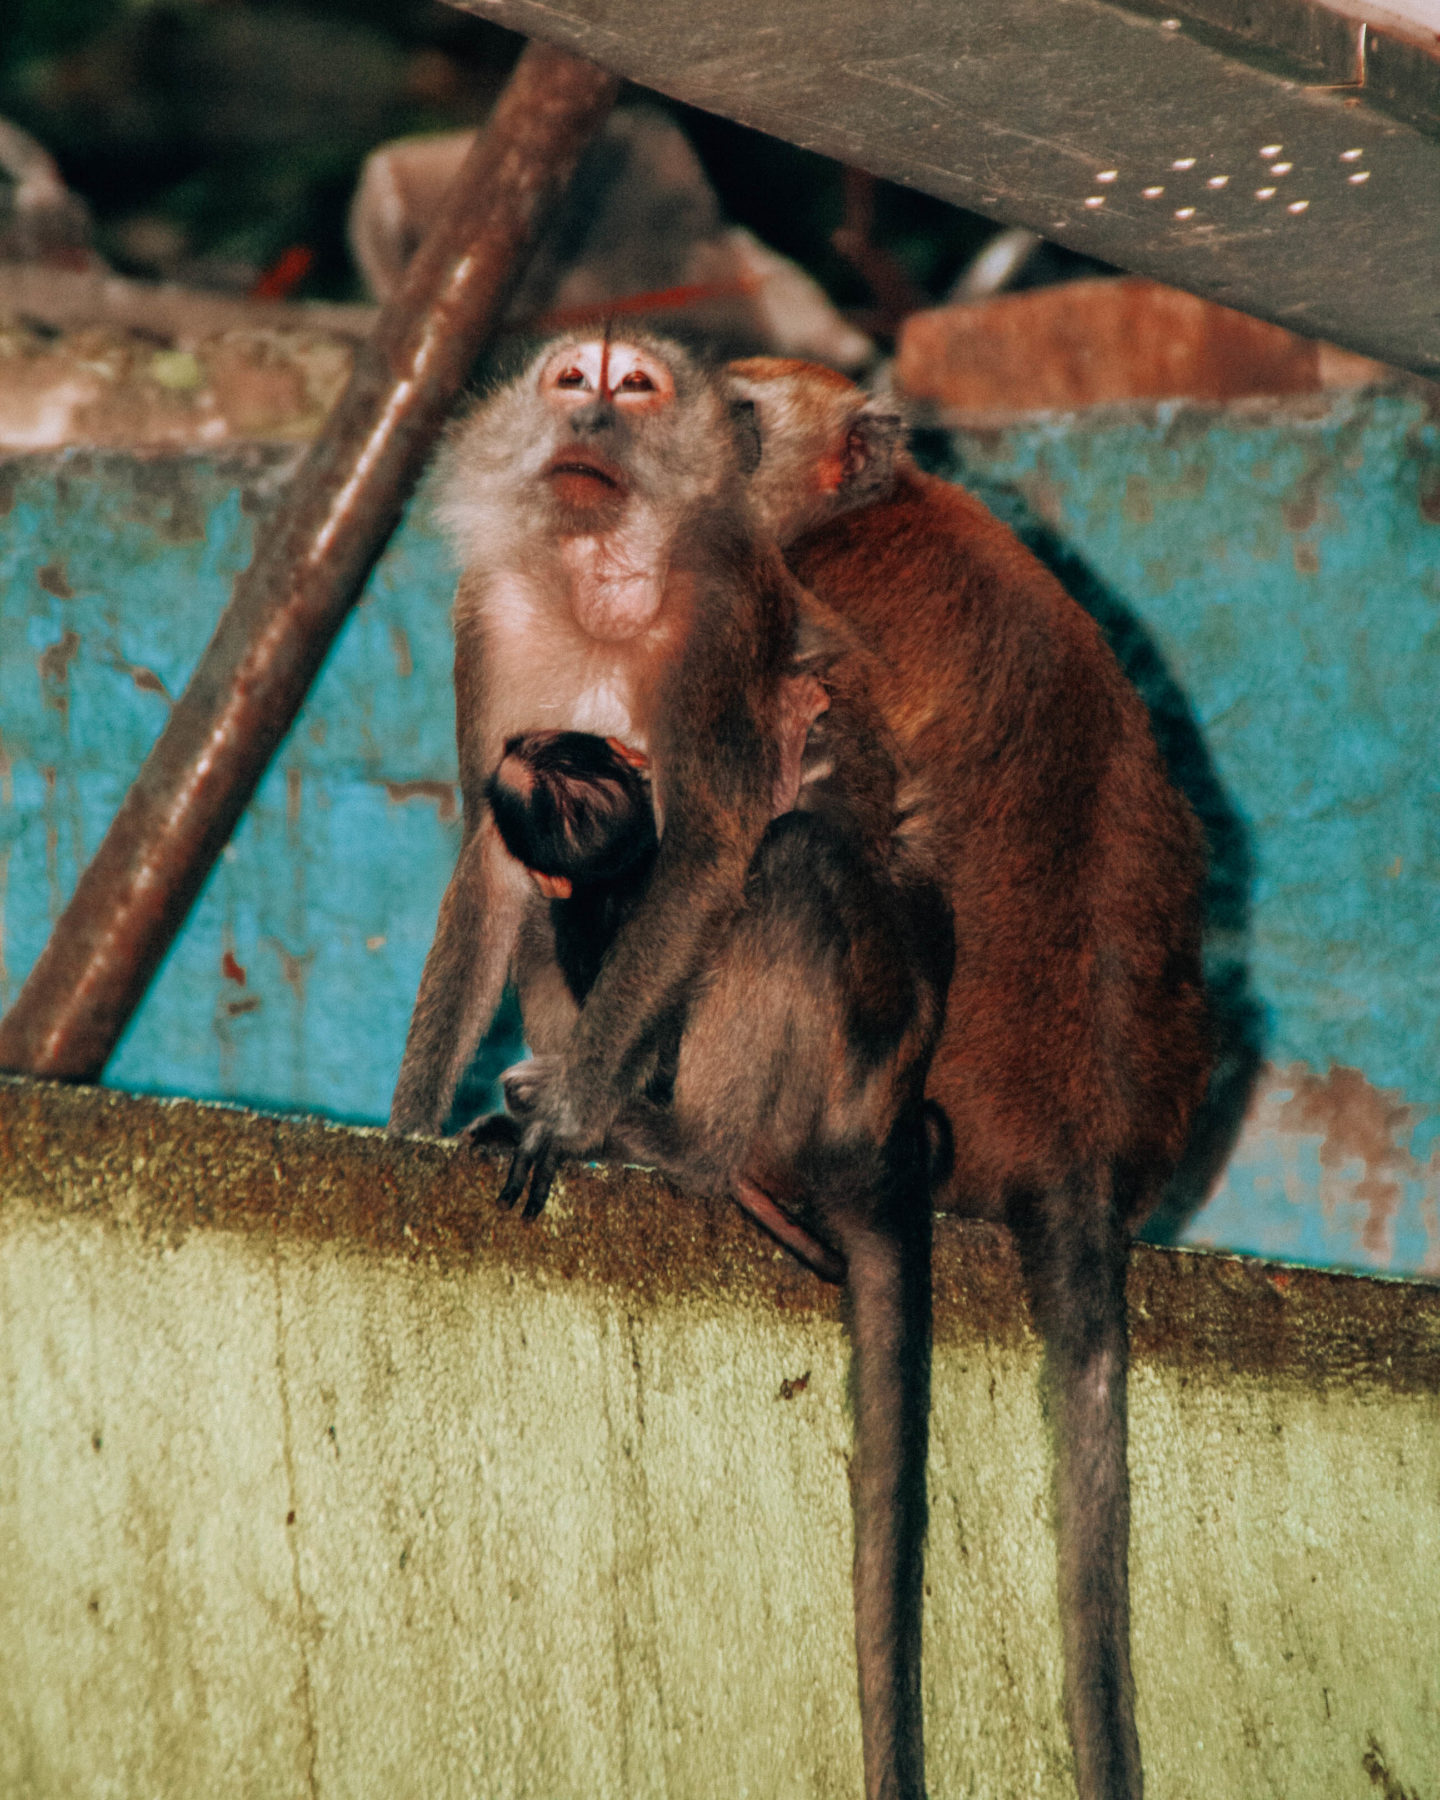 Free monkeys in the Batu Caves